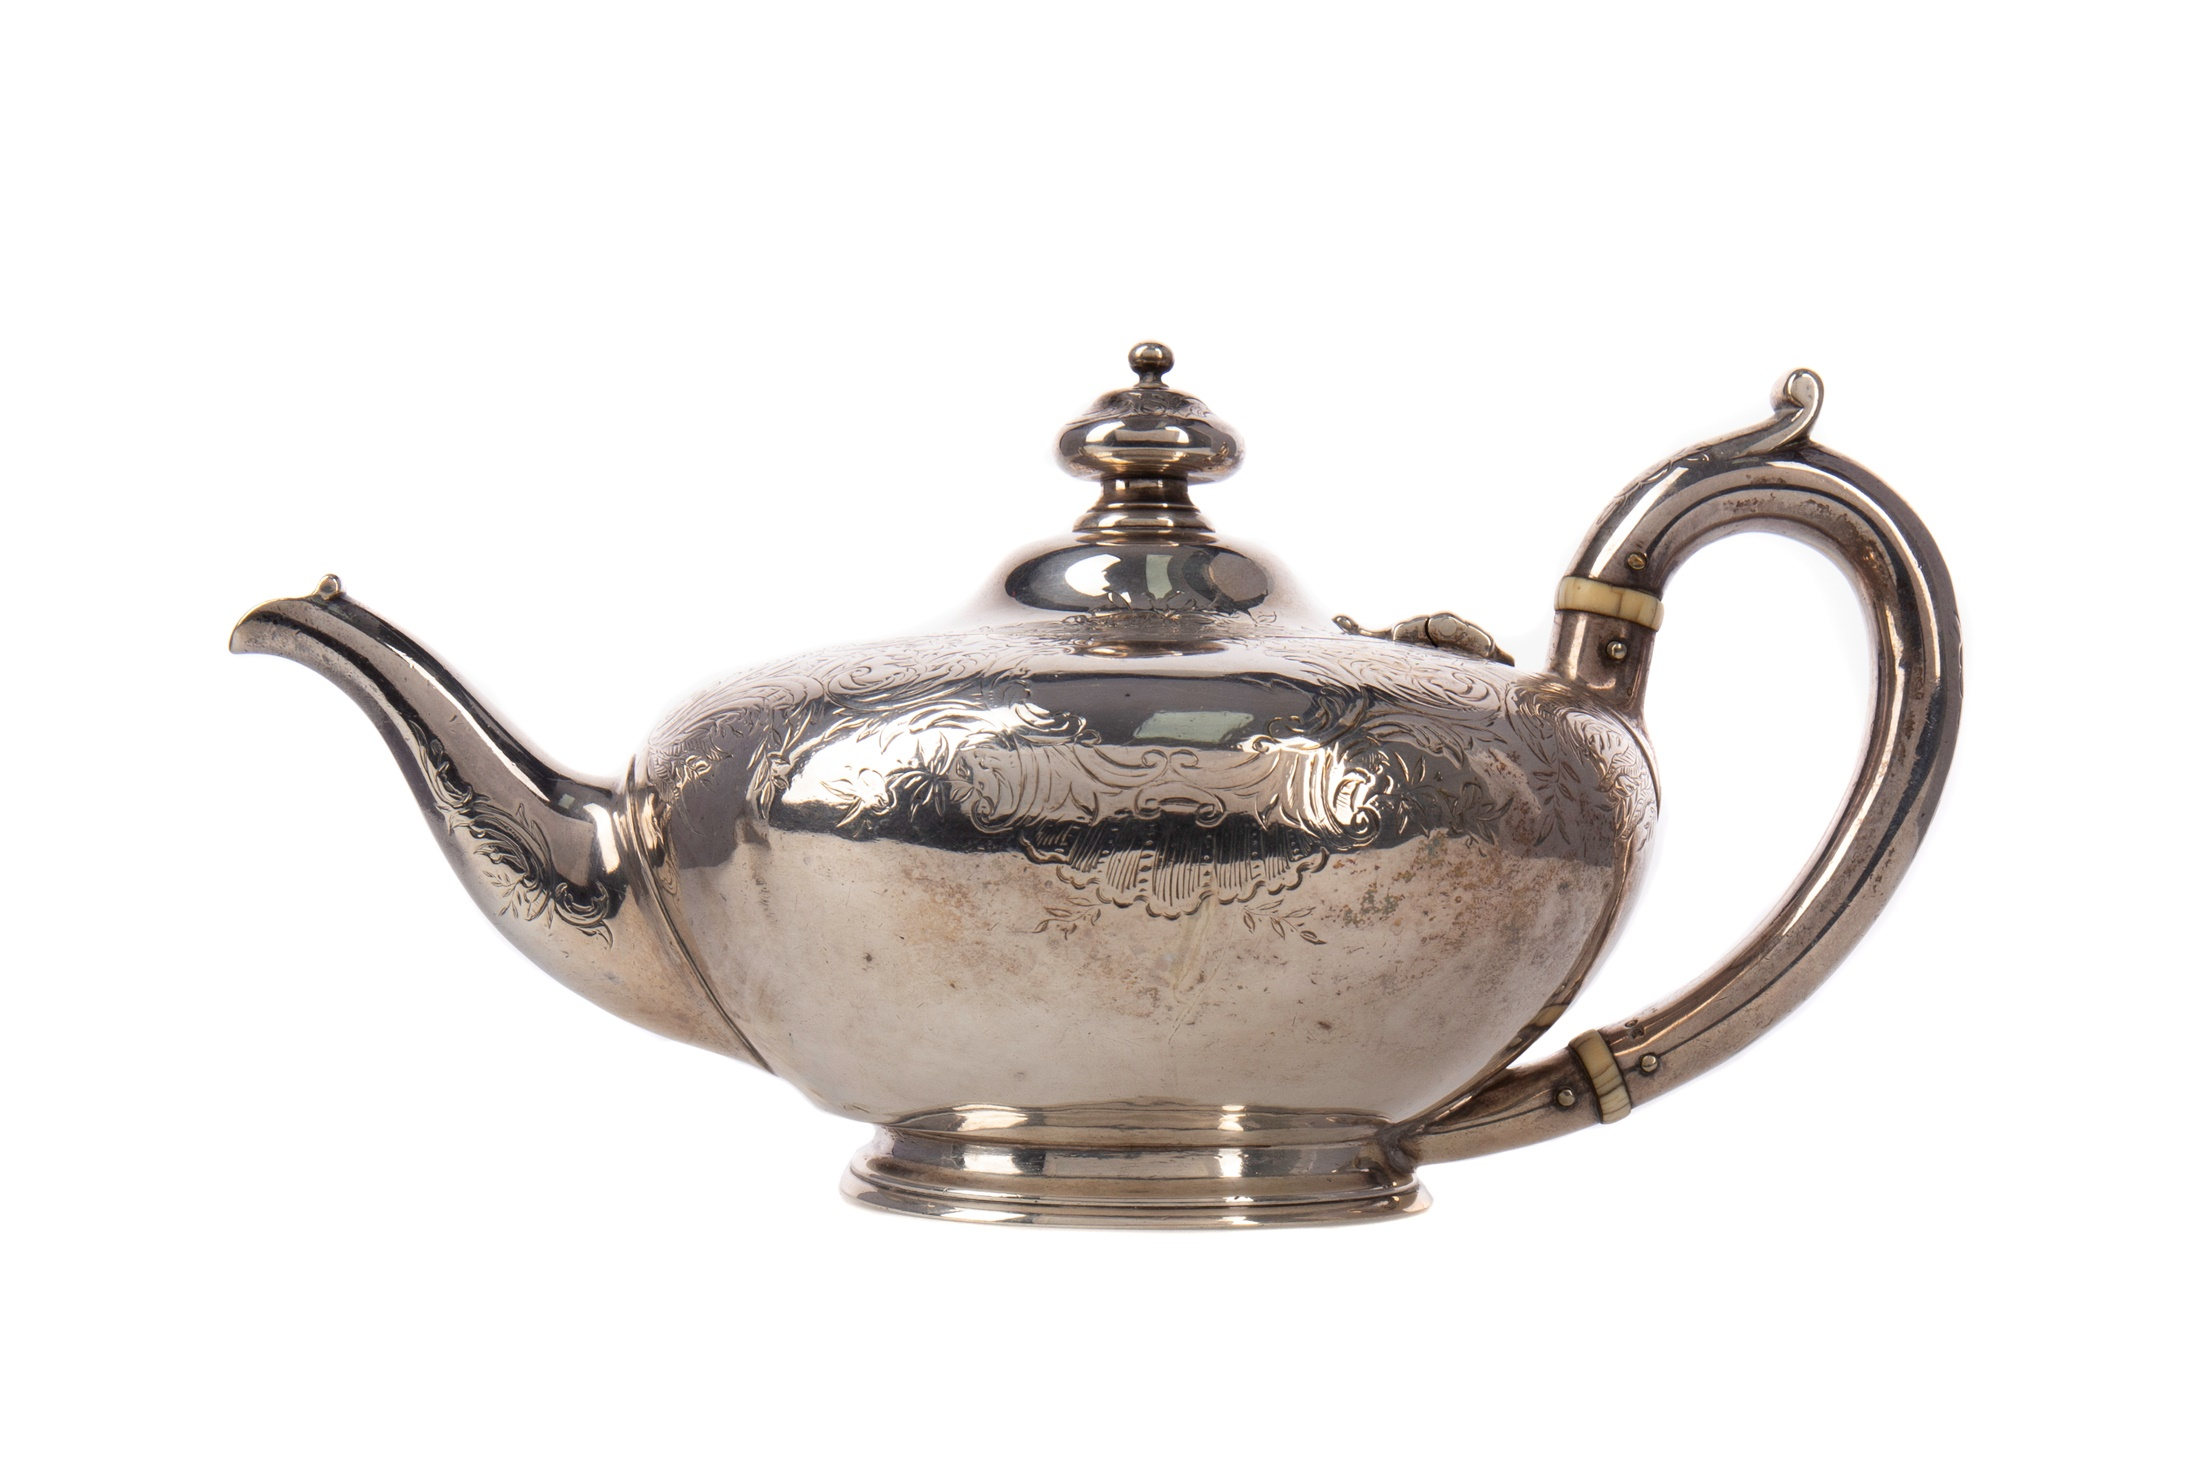 A VICTORIAN SILVER AFTERNOON TEAPOT